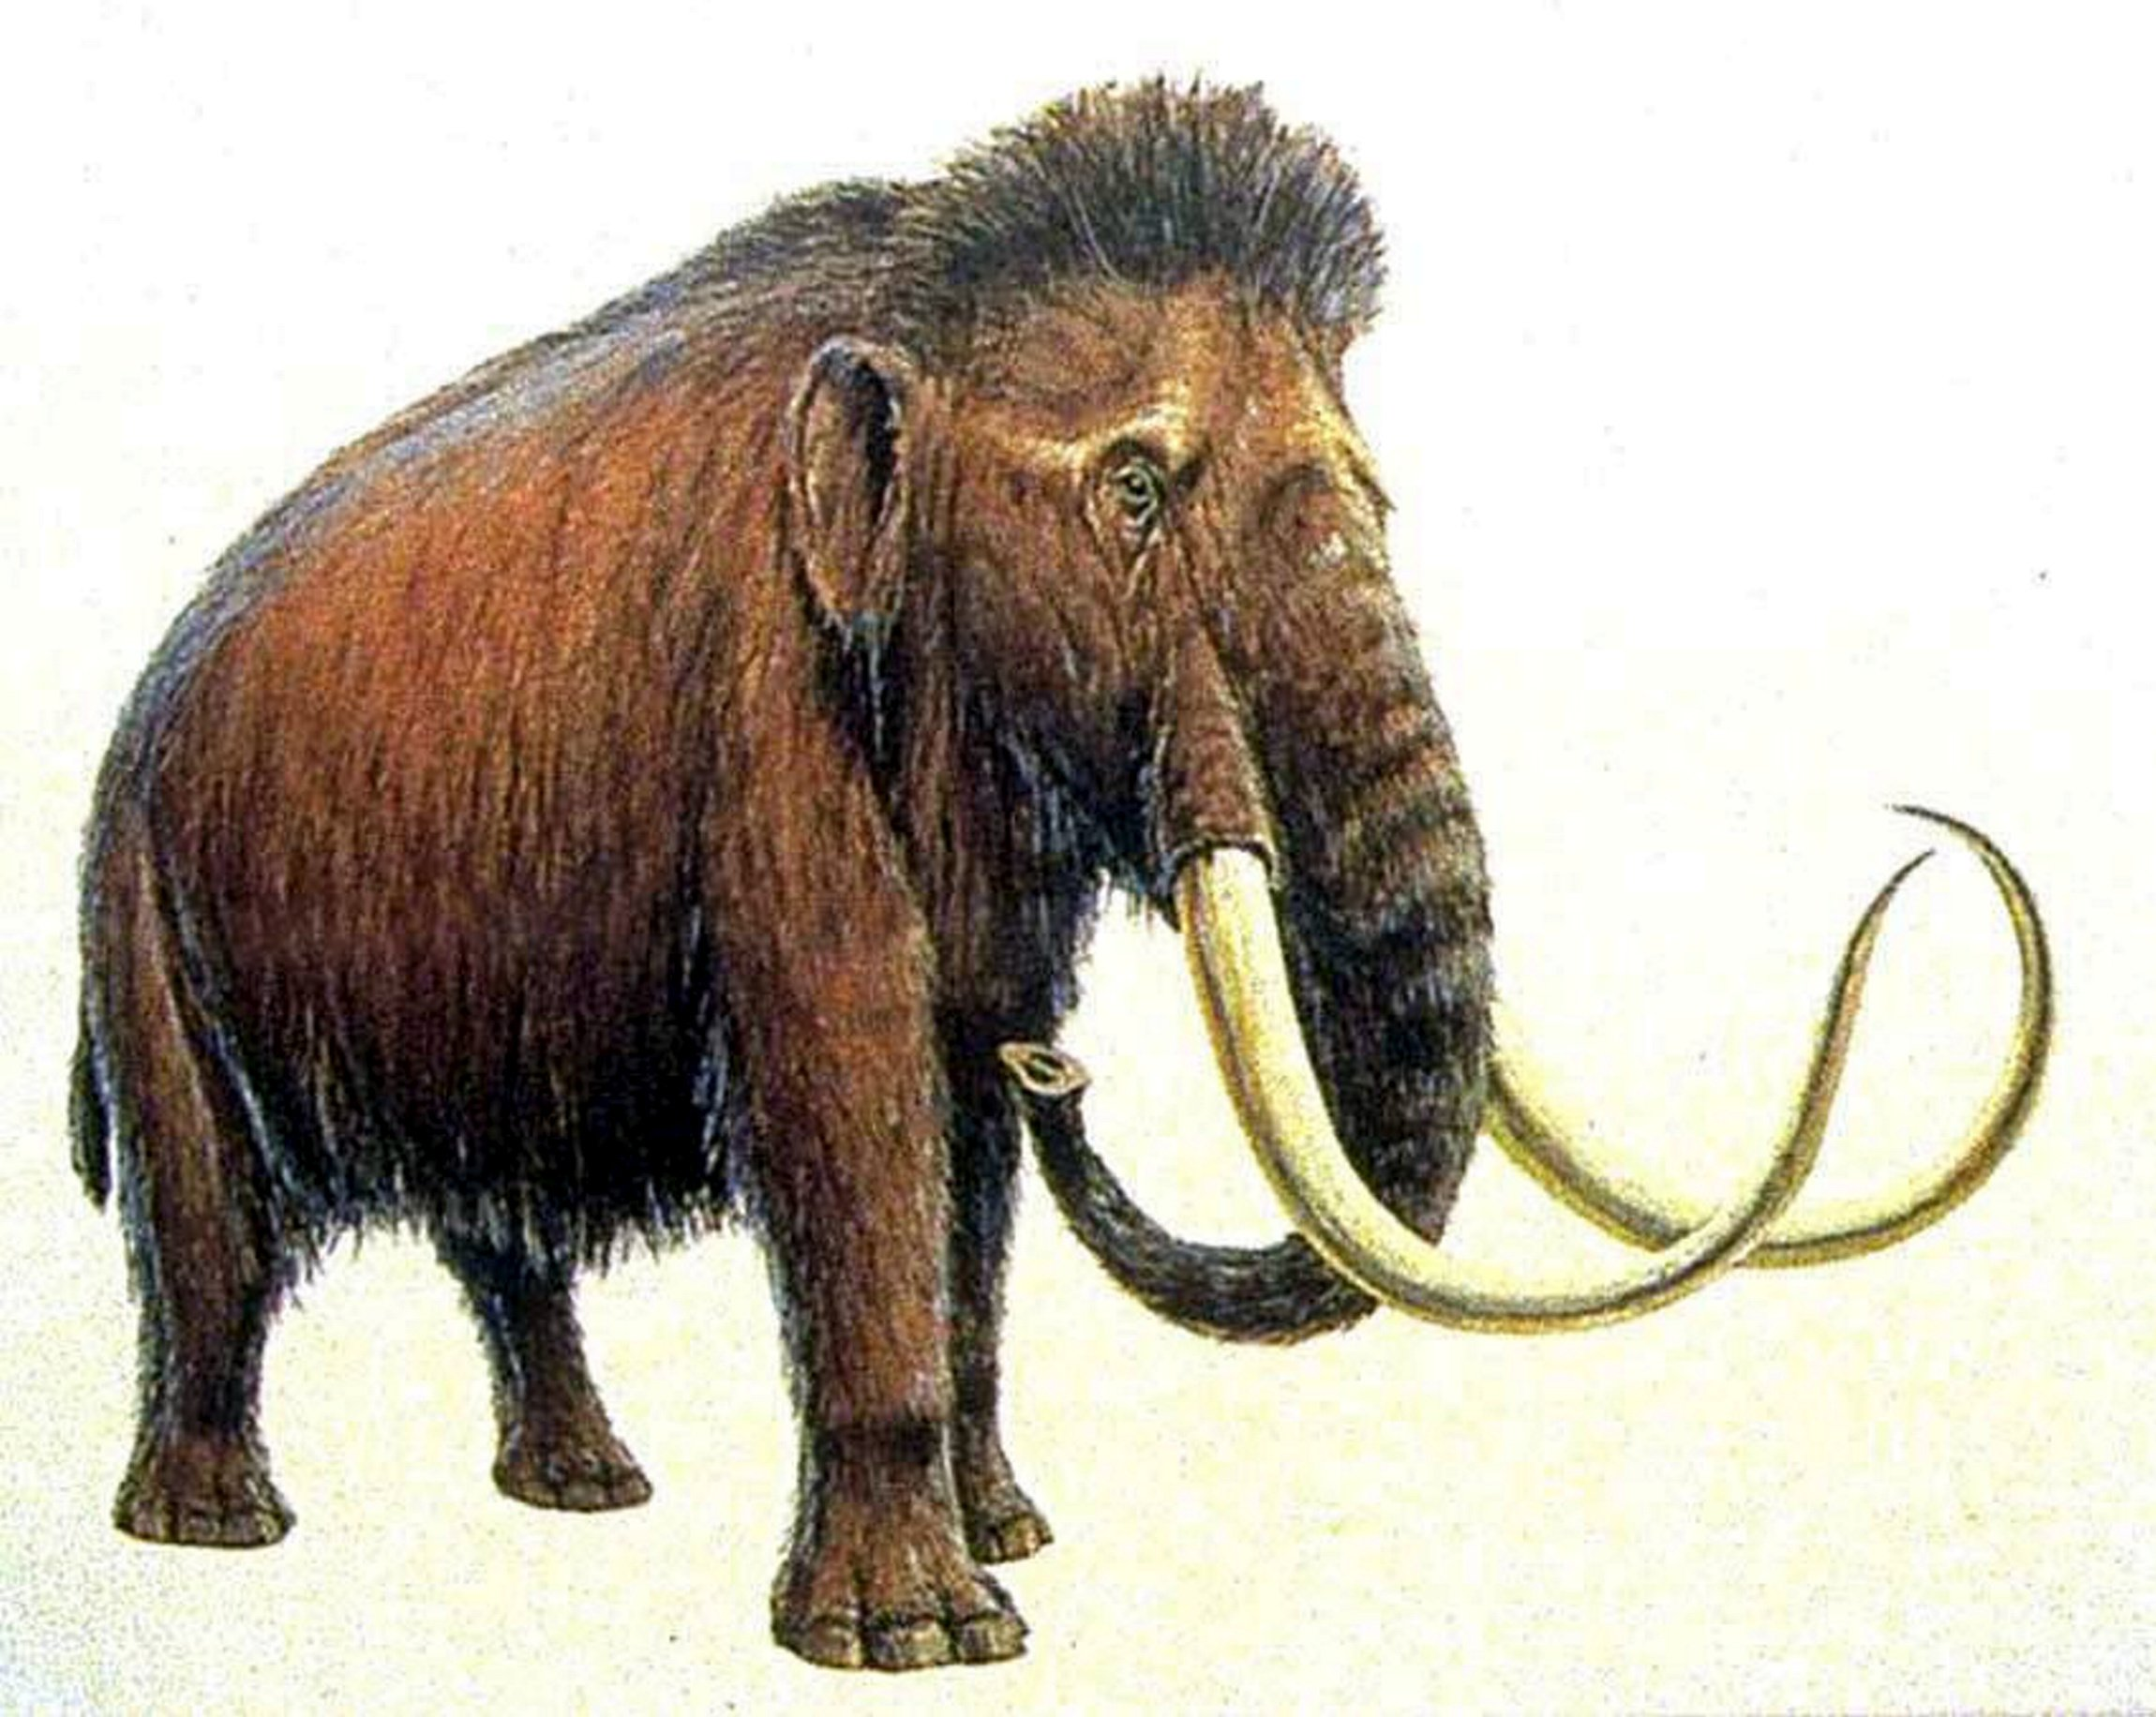 A woolly mammoth. See Masons story MNFOSSIL; A metal detector who stumbled across a phallus-shaped fossil on a beach has prompted claims it could be a mammoth's PENIS. Robert Mee unearthed the six centimetre find on the same stretch of coastline where the skeleton of a mammoth - often referred to as an elephant - was discovered 27 years ago. He made the surprising discovery in Hunstanton, Norfolk - just 30 miles from where the West Runton mammoth last walked more than 700,000 years ago. Robert later shared his find on Facebook appealing for help in identifying it.